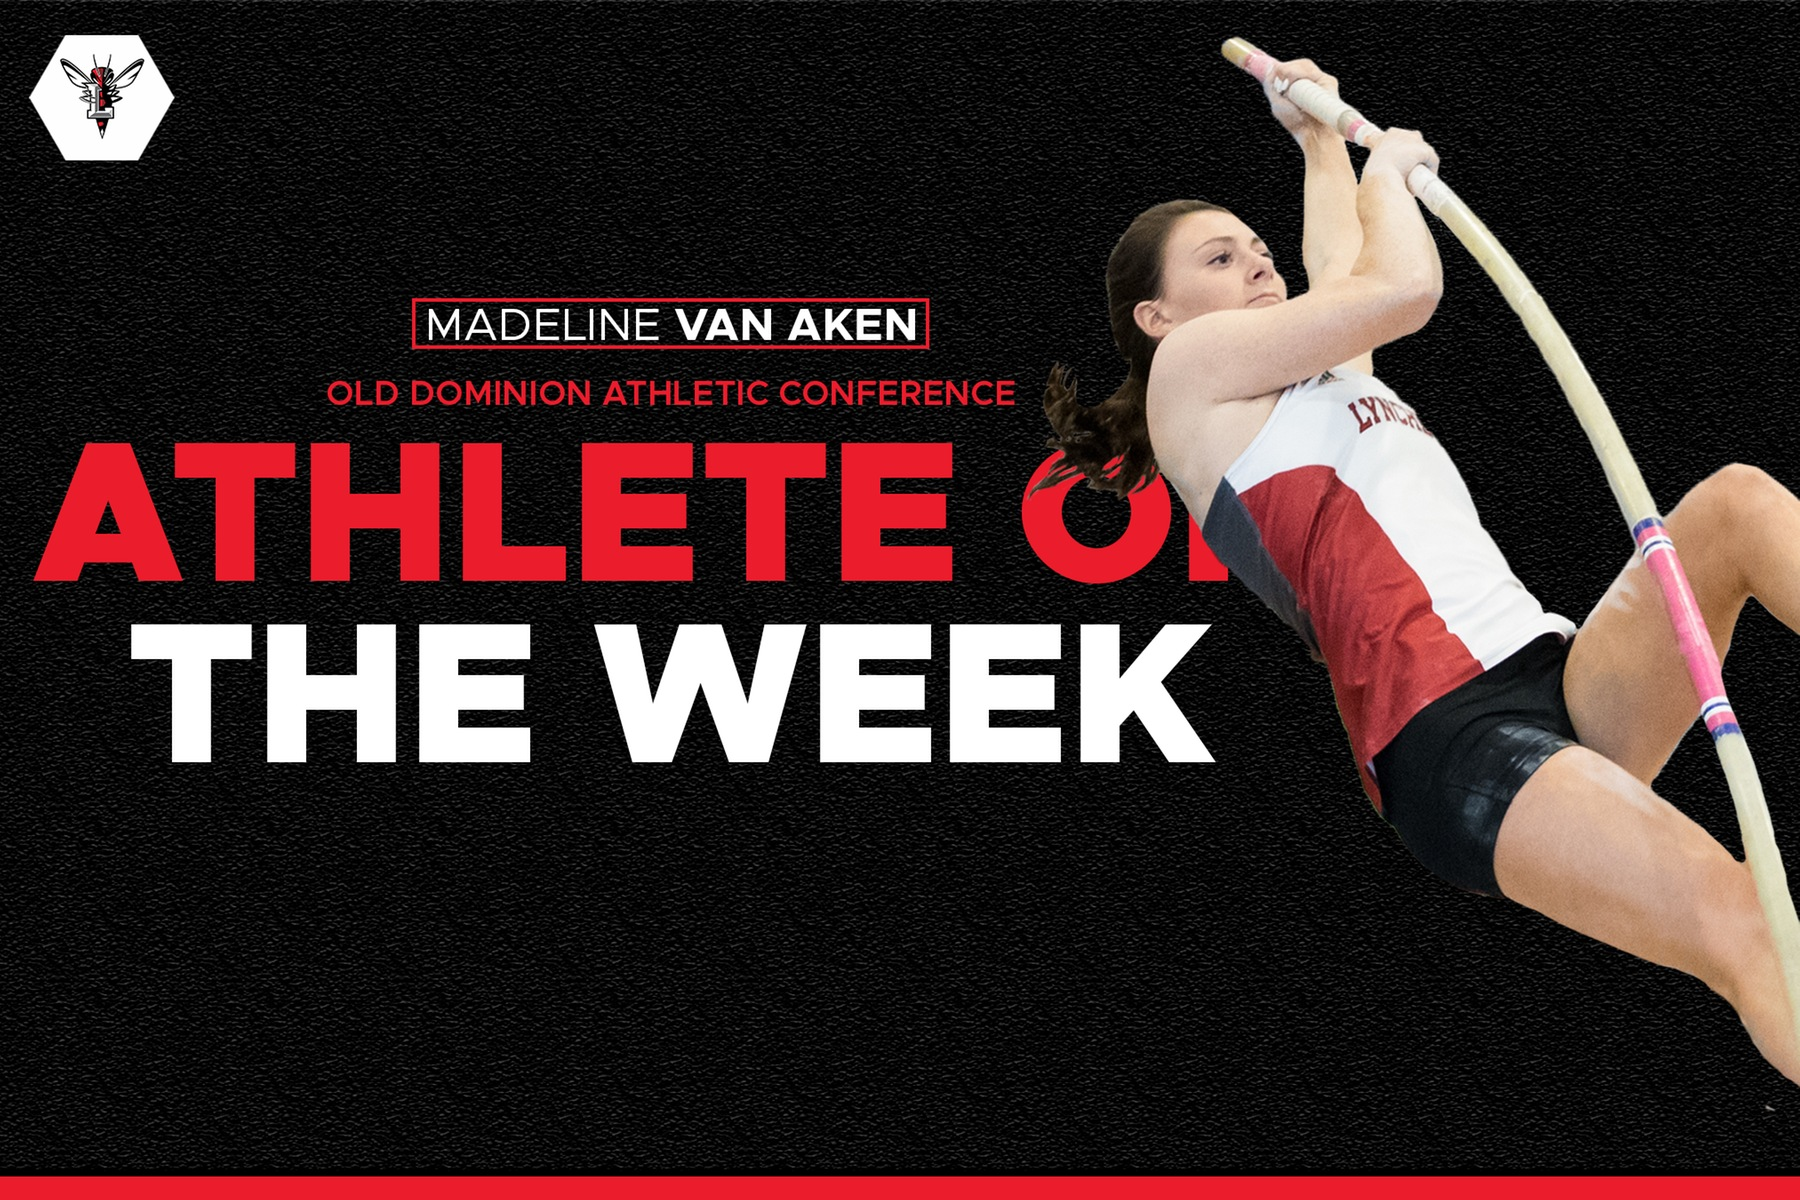 Cutout image of Maddie Van Aken pole vaulting. Text: ODAC athlete of the week